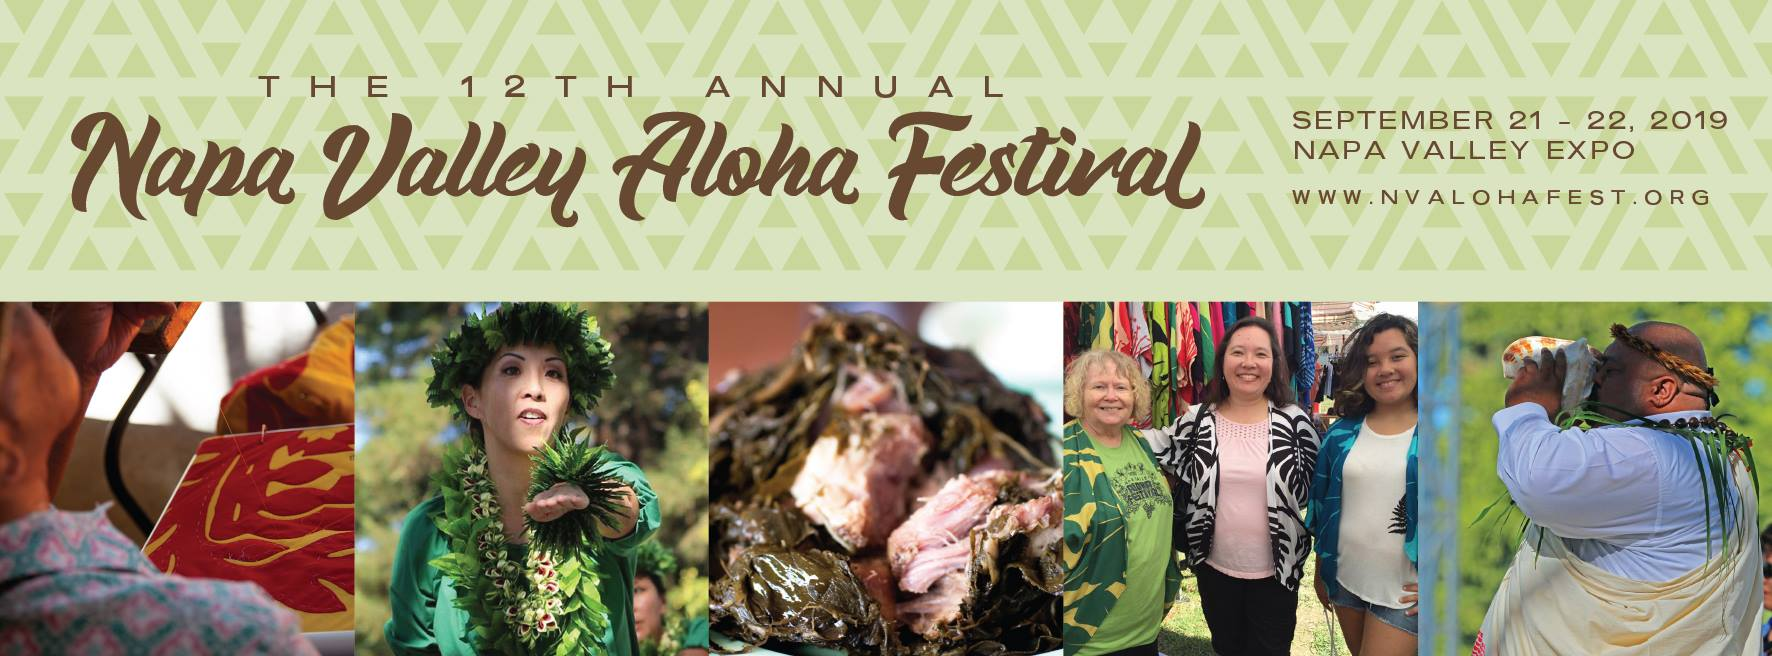 Napa Valley Aloha Festival - September 21-22Napa Valley ExpoLive entertainment, food, workshops, cultural exhibits and more. Best of all parking and admission are free! No tix required. Bring the ohana and enjoy some Aloha in the Napa Valley.